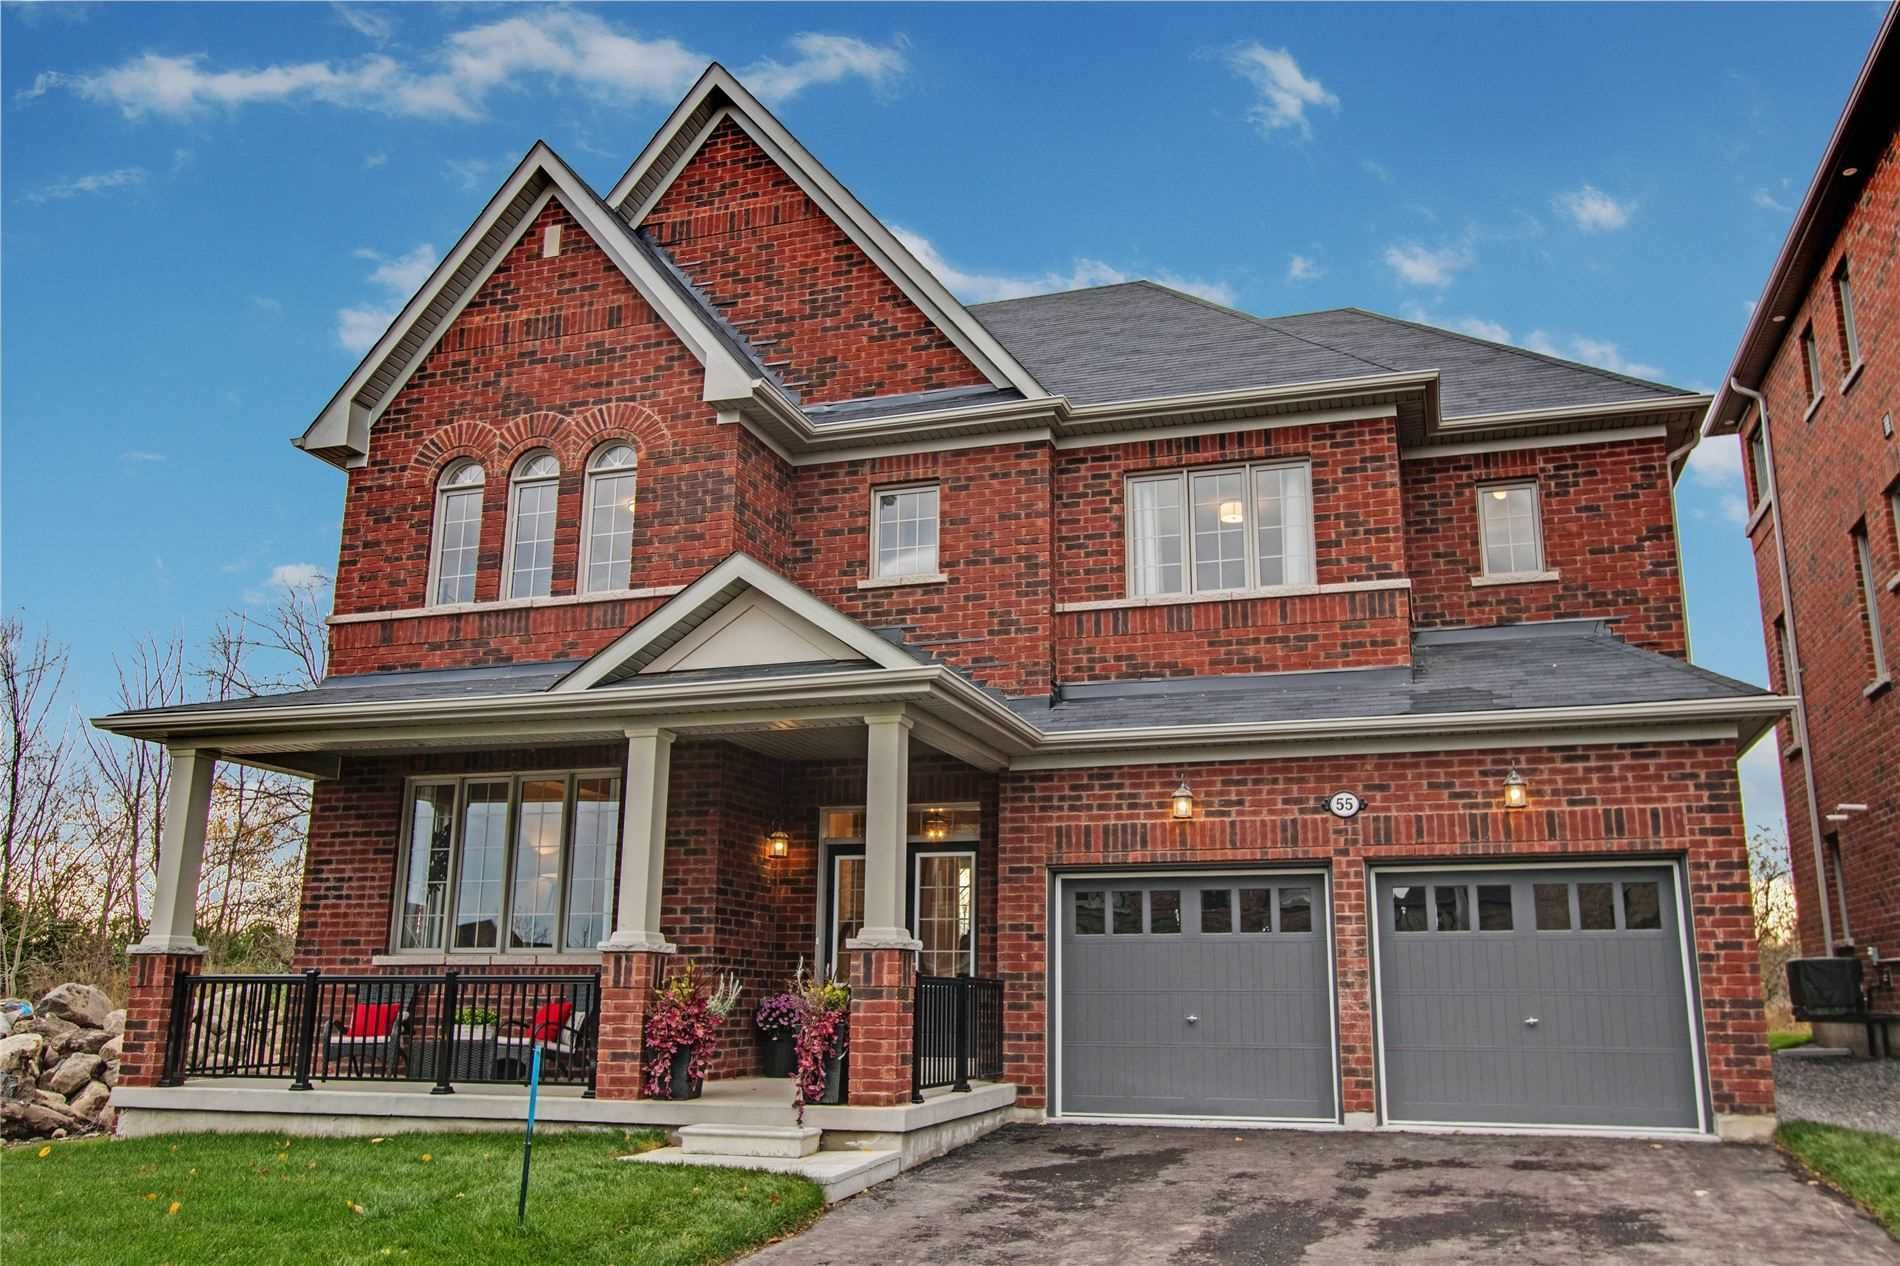 Main Photo: 55 Terry Crescent in Clarington: Bowmanville House (2 1/2 Storey) for sale : MLS®# E4660867